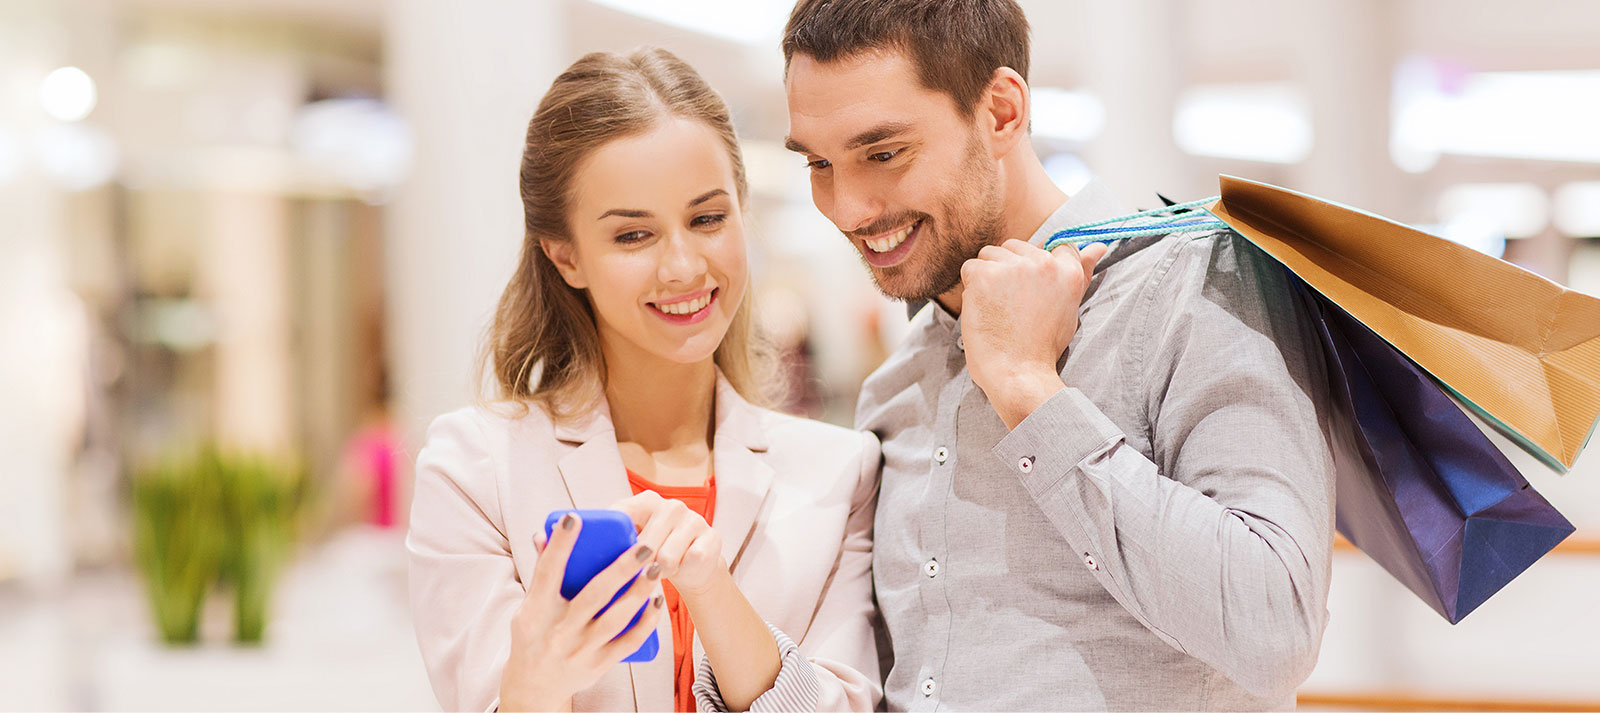 Four Pillars of Retail Customer Experience